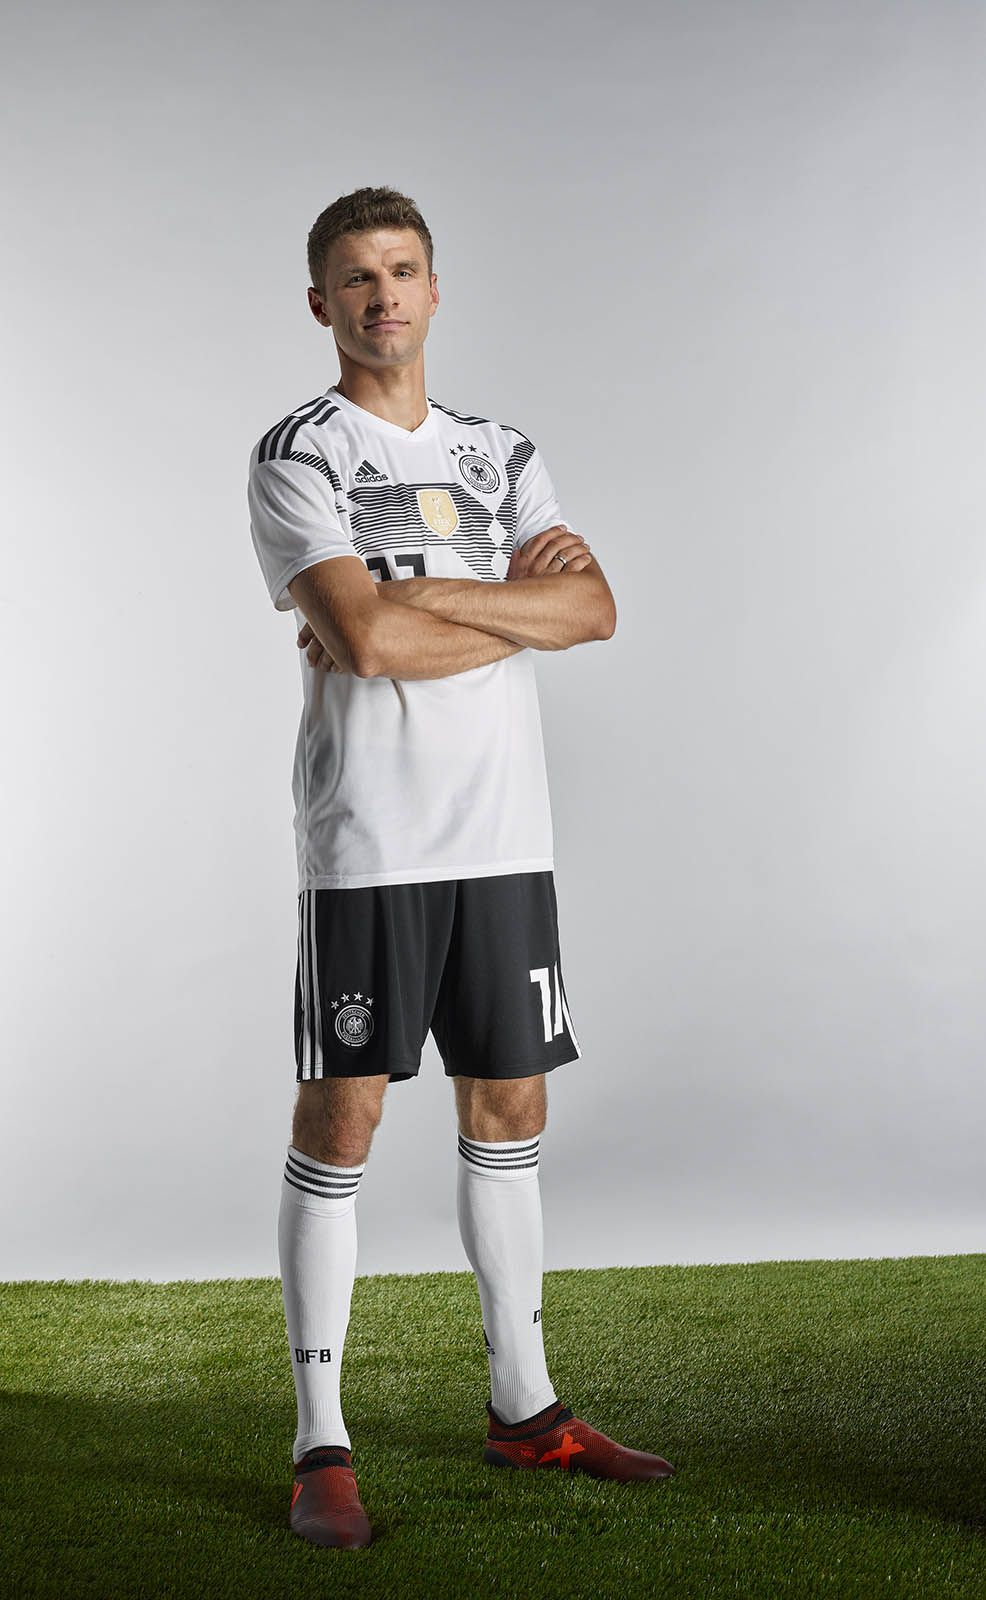 The Germany 2018 World Cup Kit Brings Back One Of The Country S Most Iconic Jersey Designs Of All Time World Cup Jersey Fashion Germany